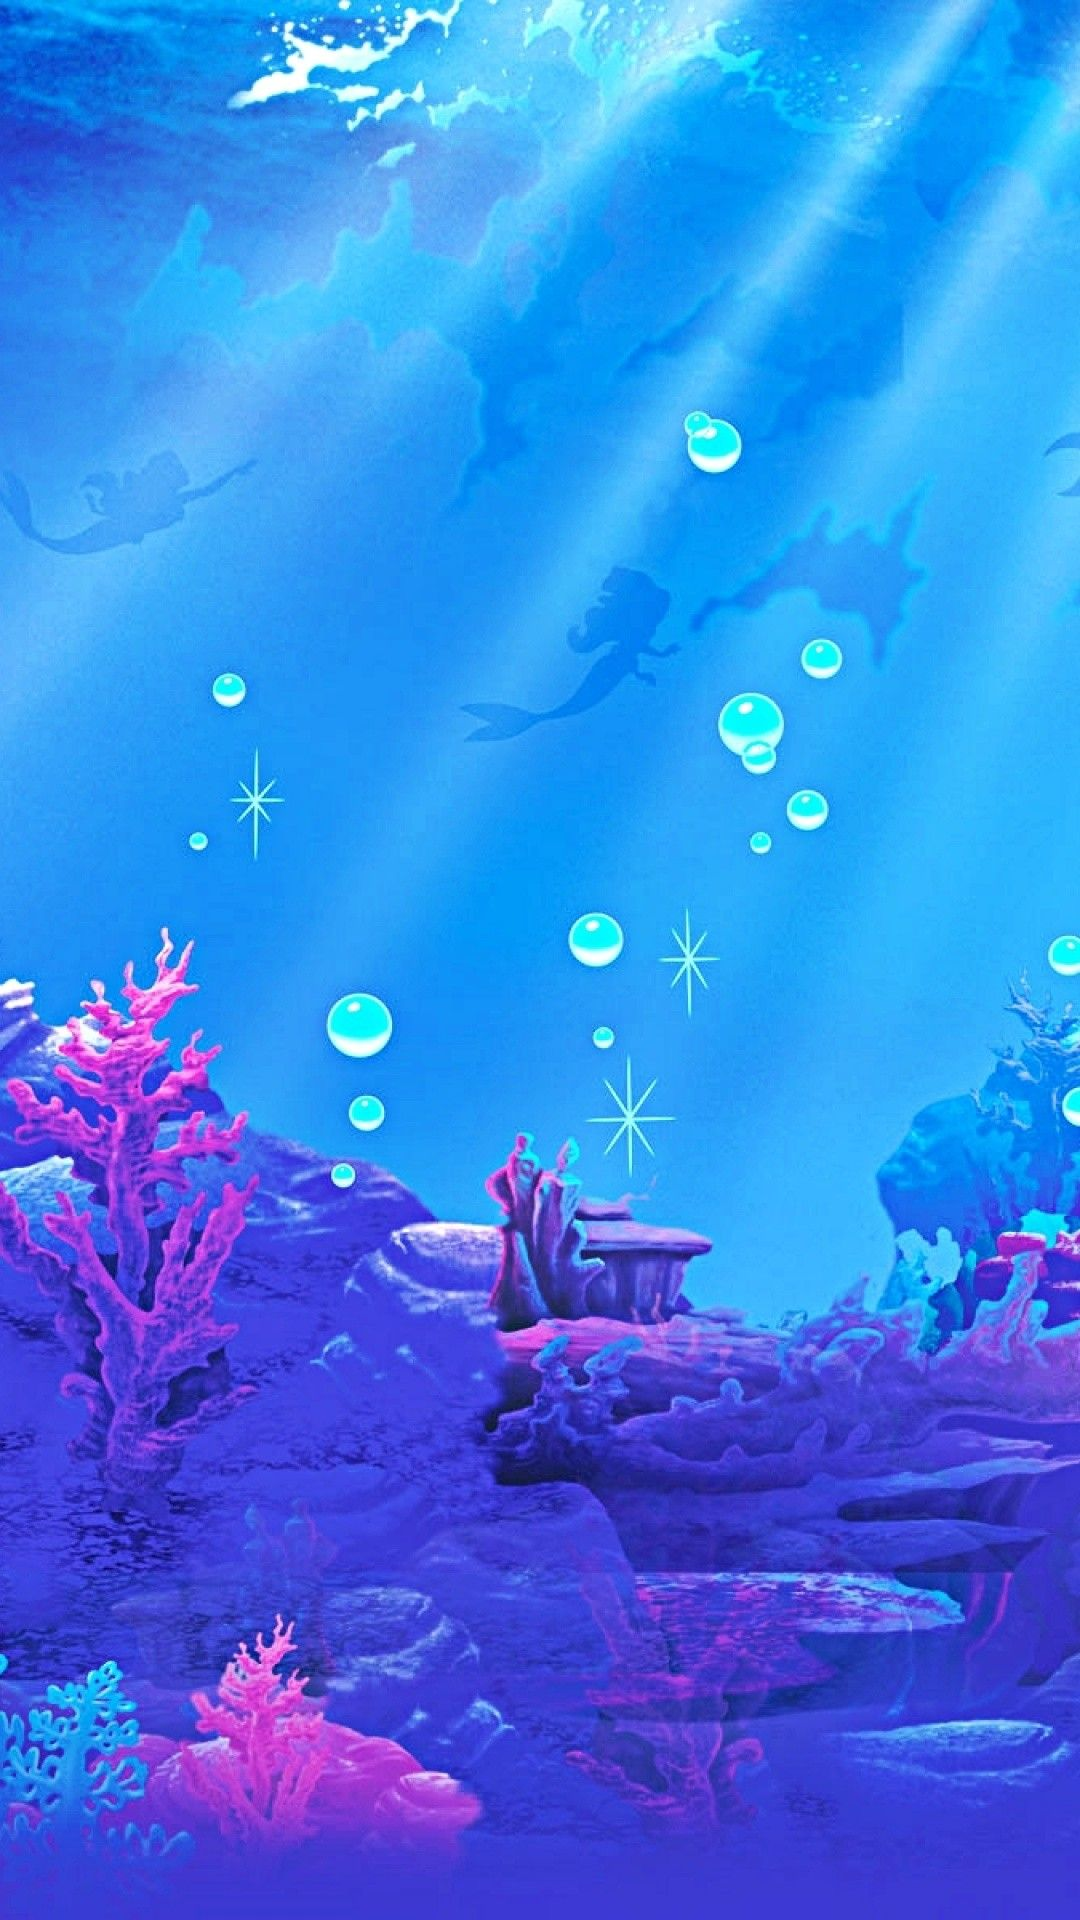 1080x1920 The Little Mermaid Wallpapers (60+ images) (With ...